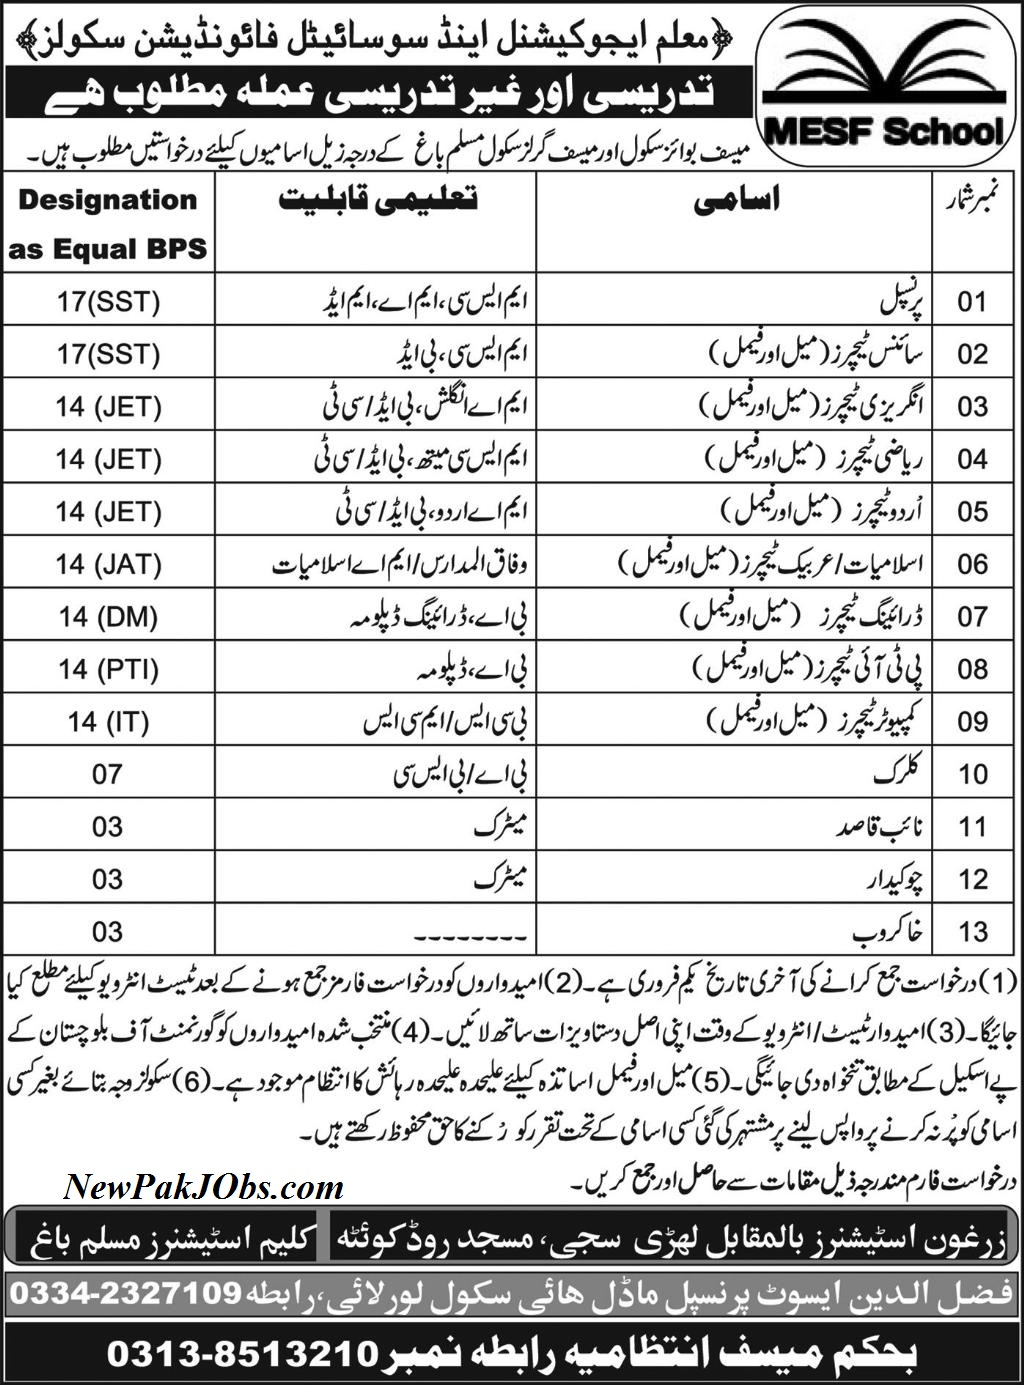 Latest Jobs in MESF Boys & Girls Schools  Quetta 19 Jan 2018